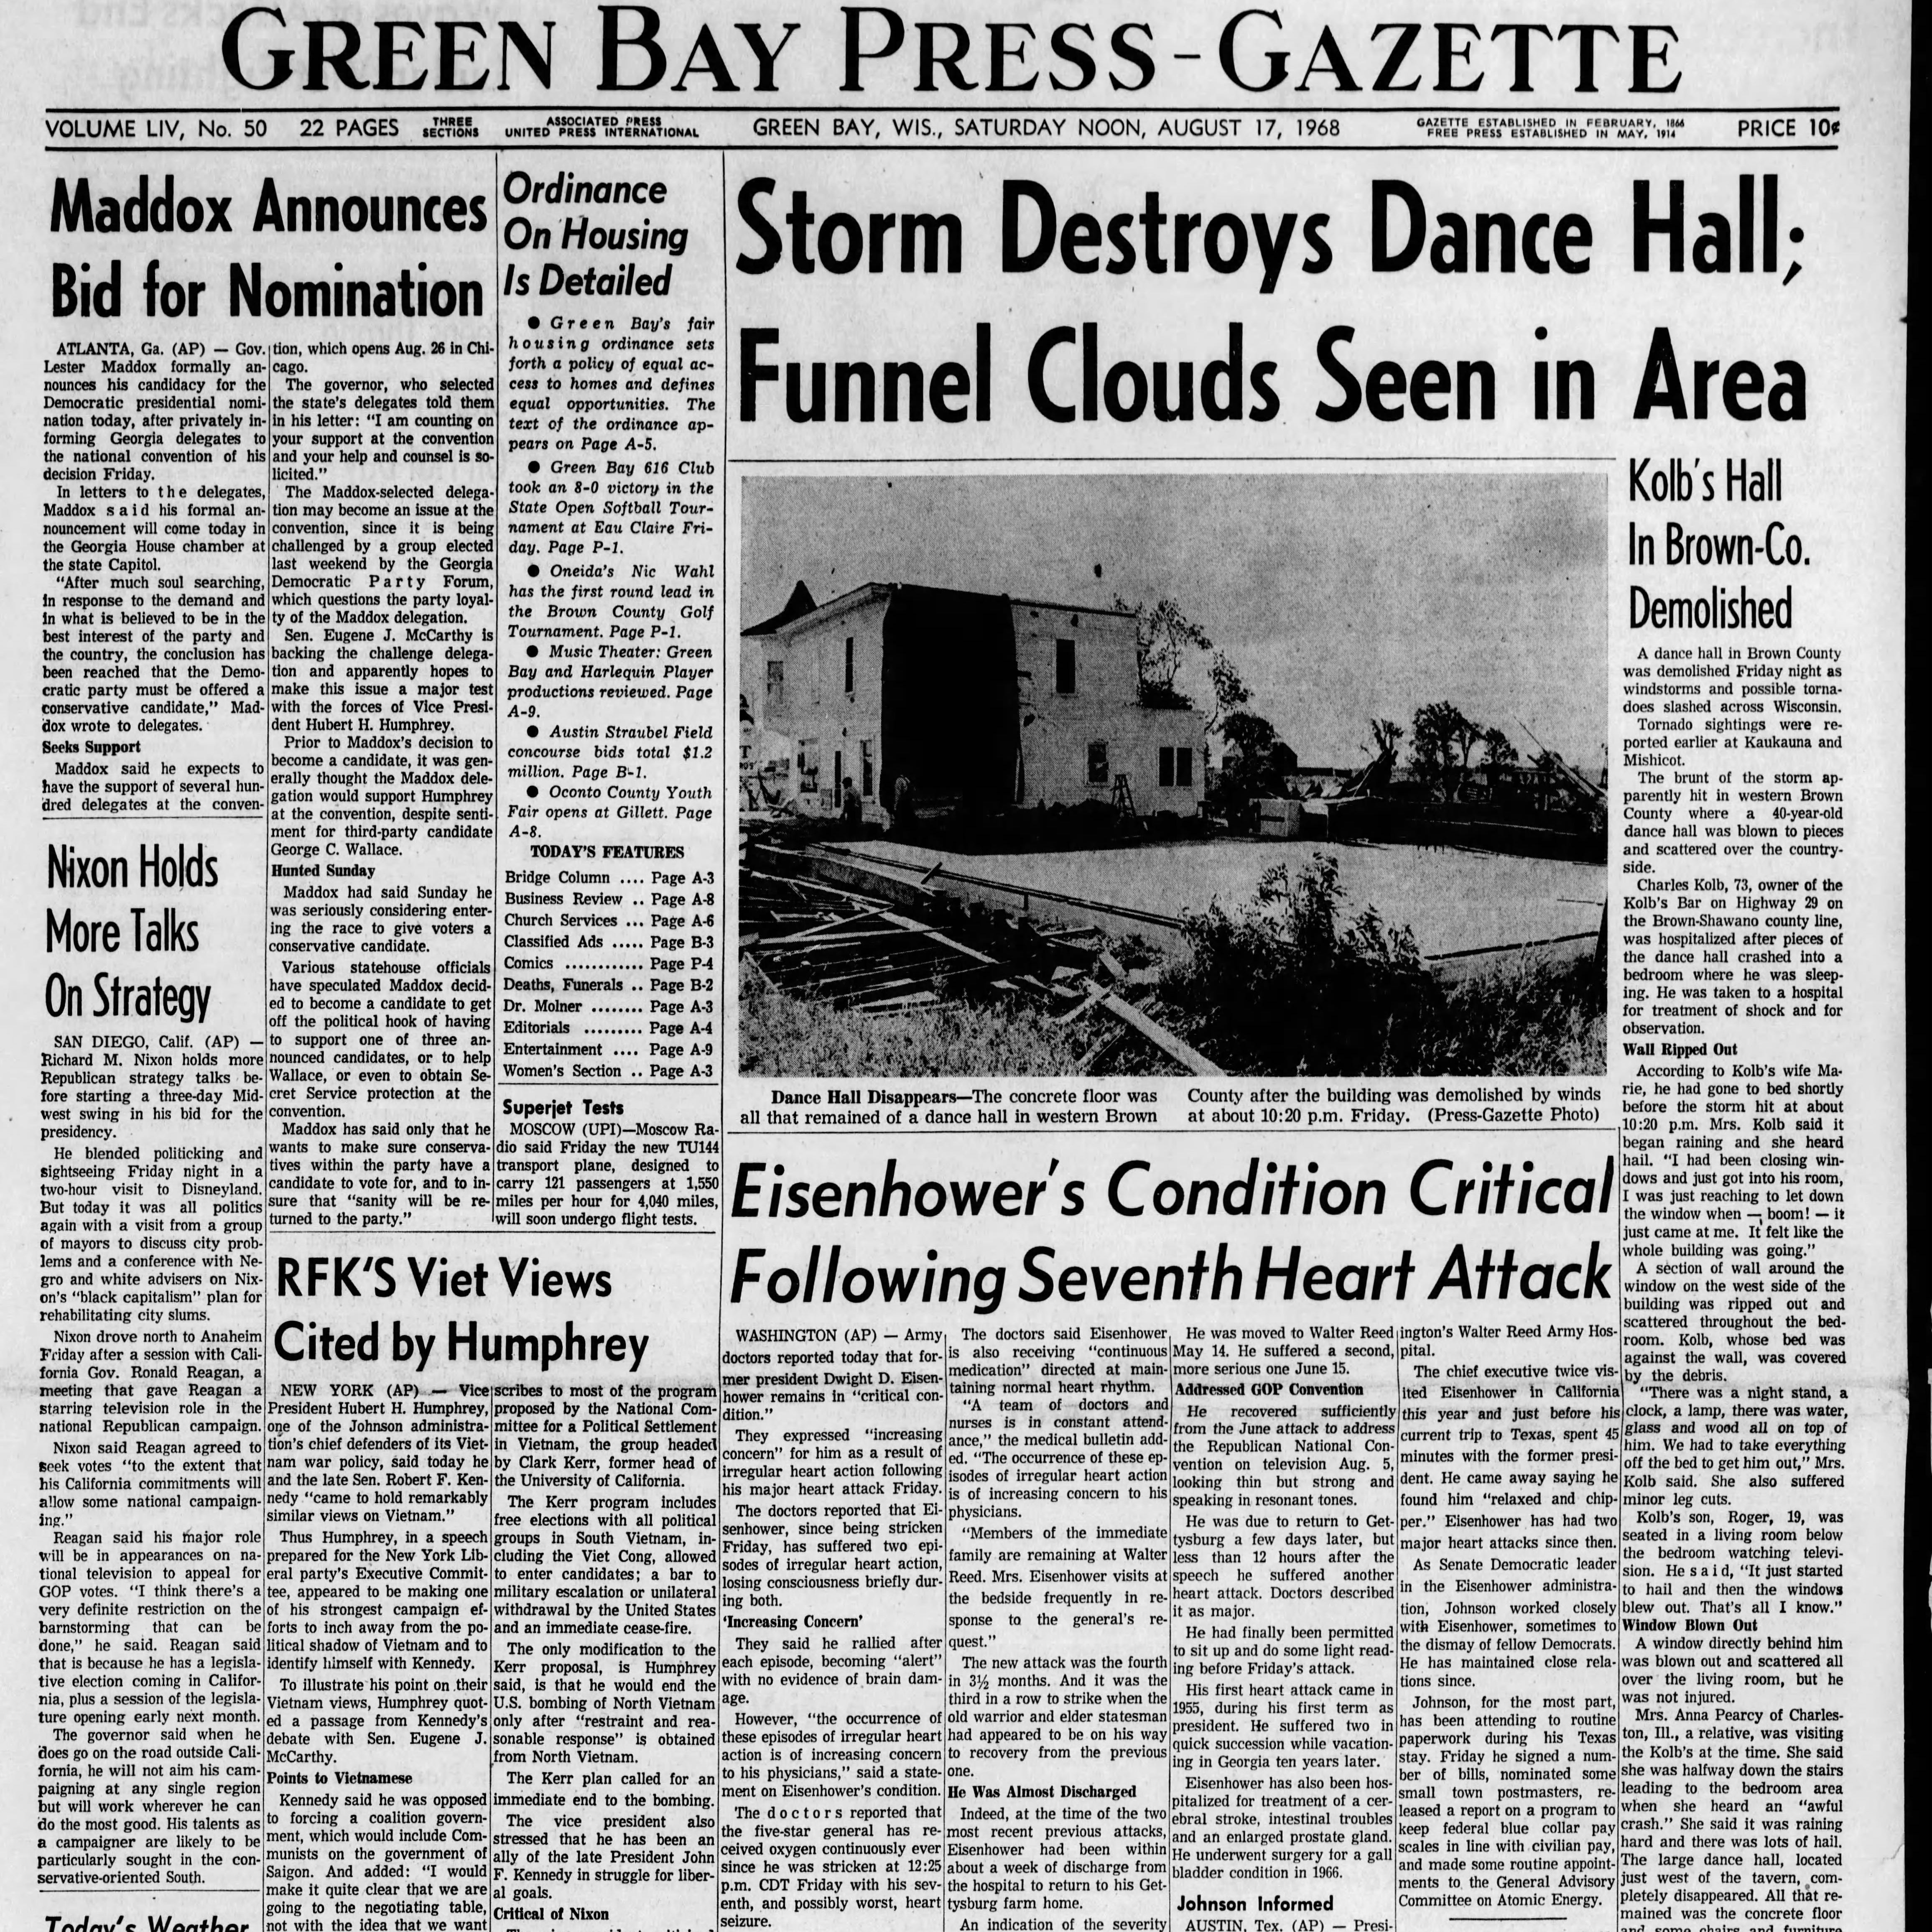 Green Bay Press-Gazette today in history: August 17